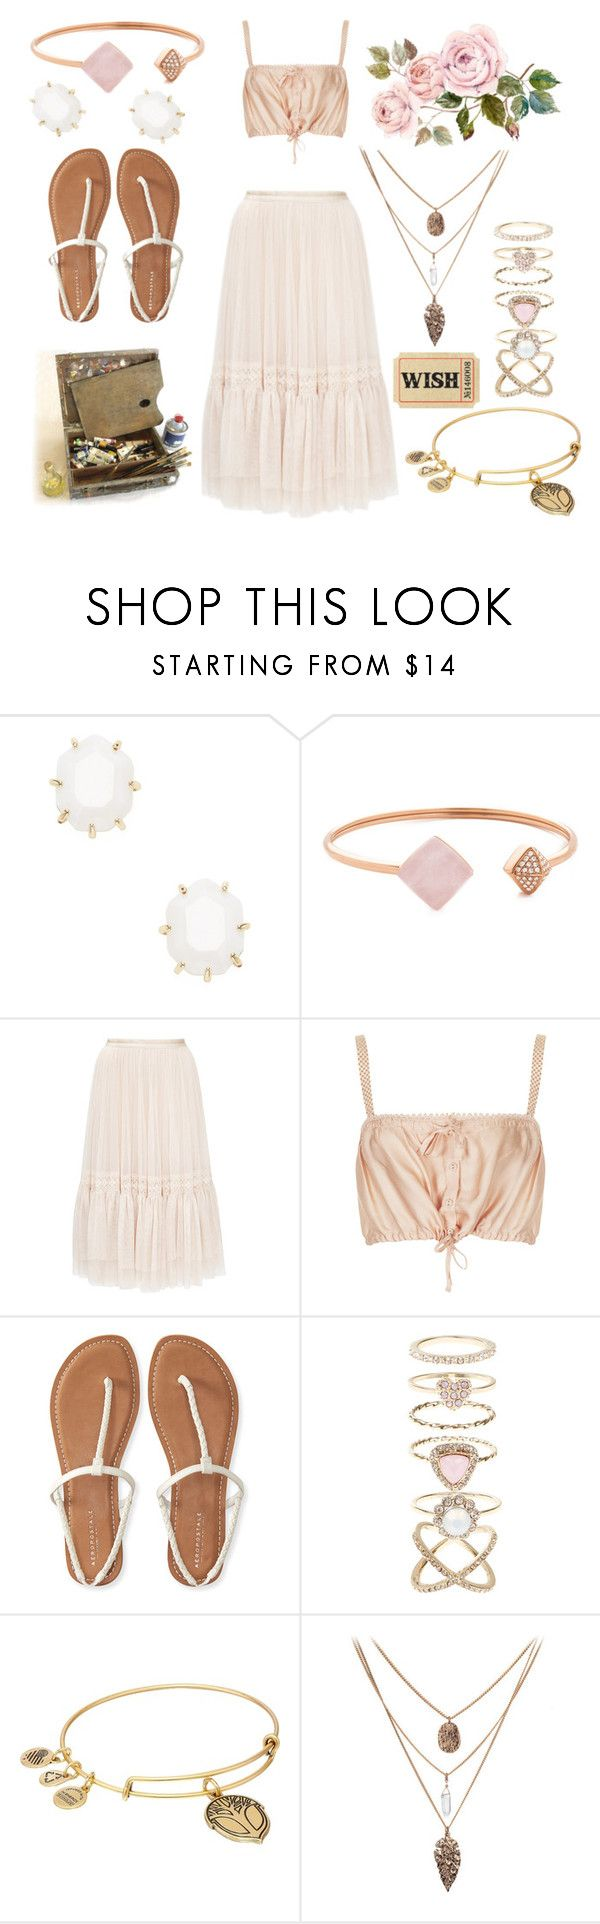 """""""Brida J"""" by challicewell ❤ liked on Polyvore featuring Kendra Scott, Michael Kors, Needle & Thread, Topshop, Aéropostale, Accessorize and Alex and Ani"""